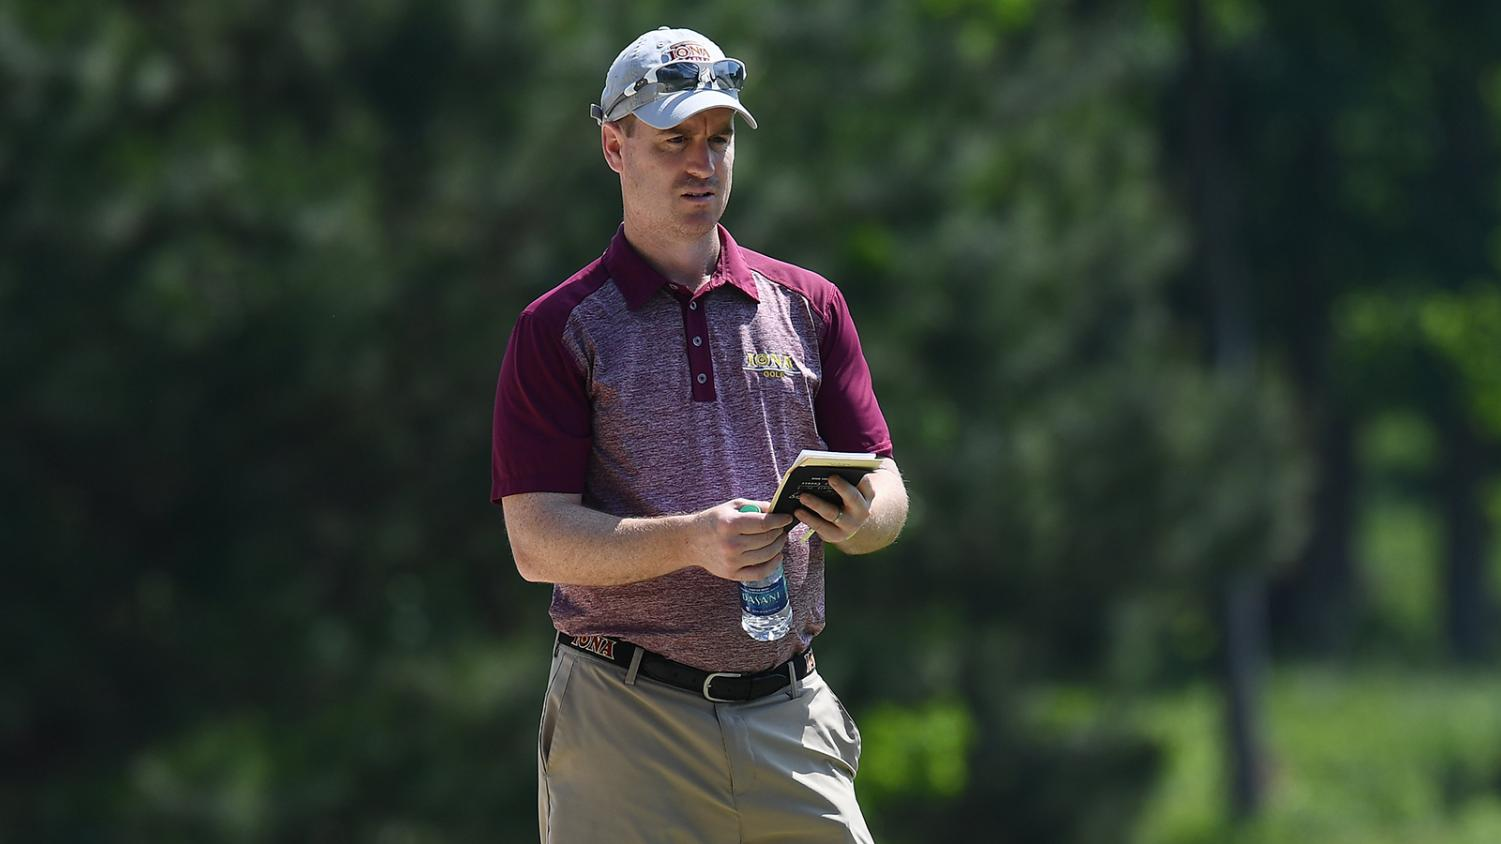 Sean Burke lead the Gaels to back to back Metro Atlantic Athletic Conference championships.